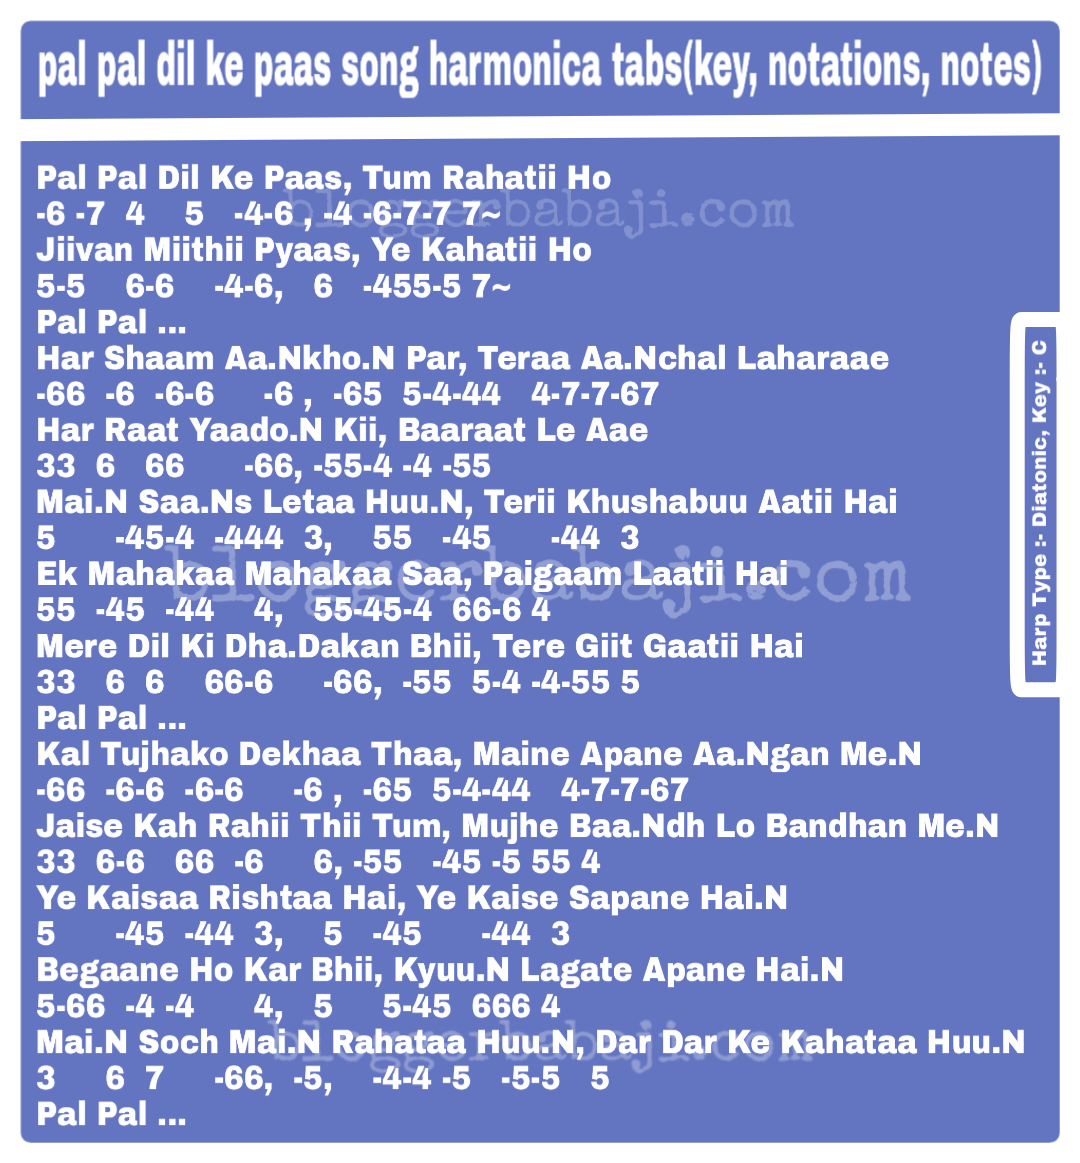 Pal Pal Dil Ke Paas Song Harmonica Tabs Key Notations Notes